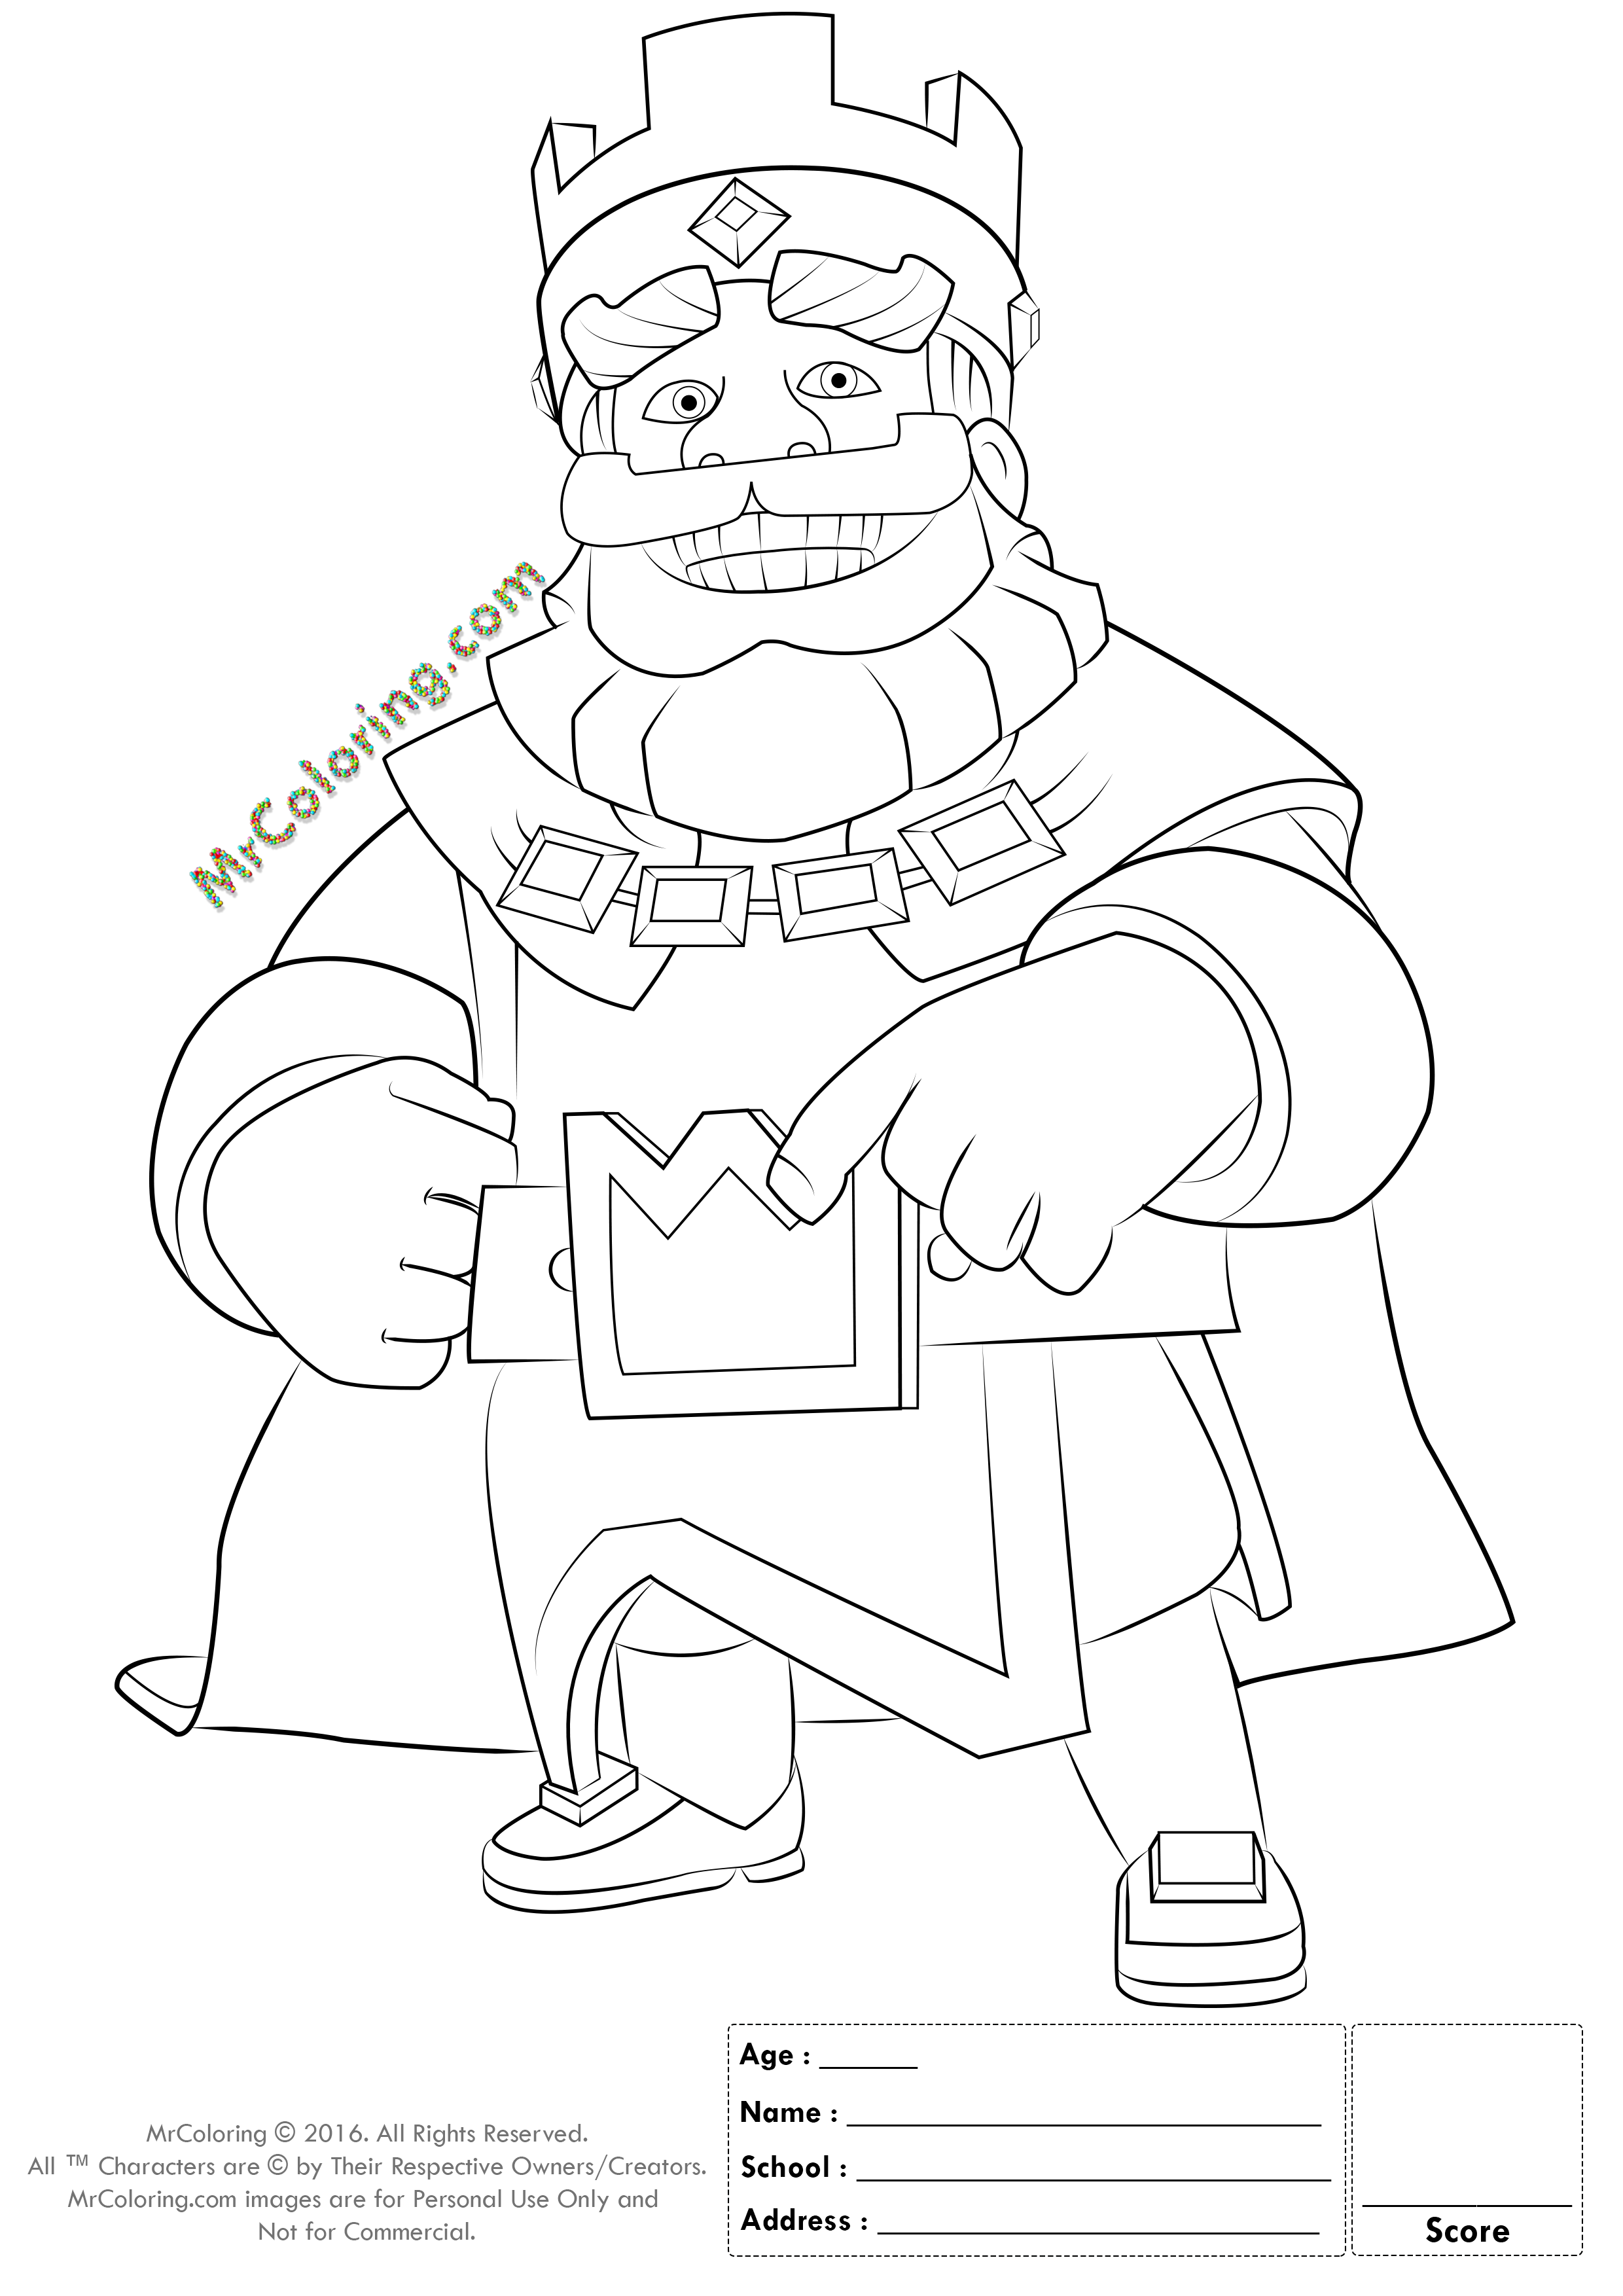 Online name coloring pages - Printable Blue King Clash Royale Online Coloring Pages 2